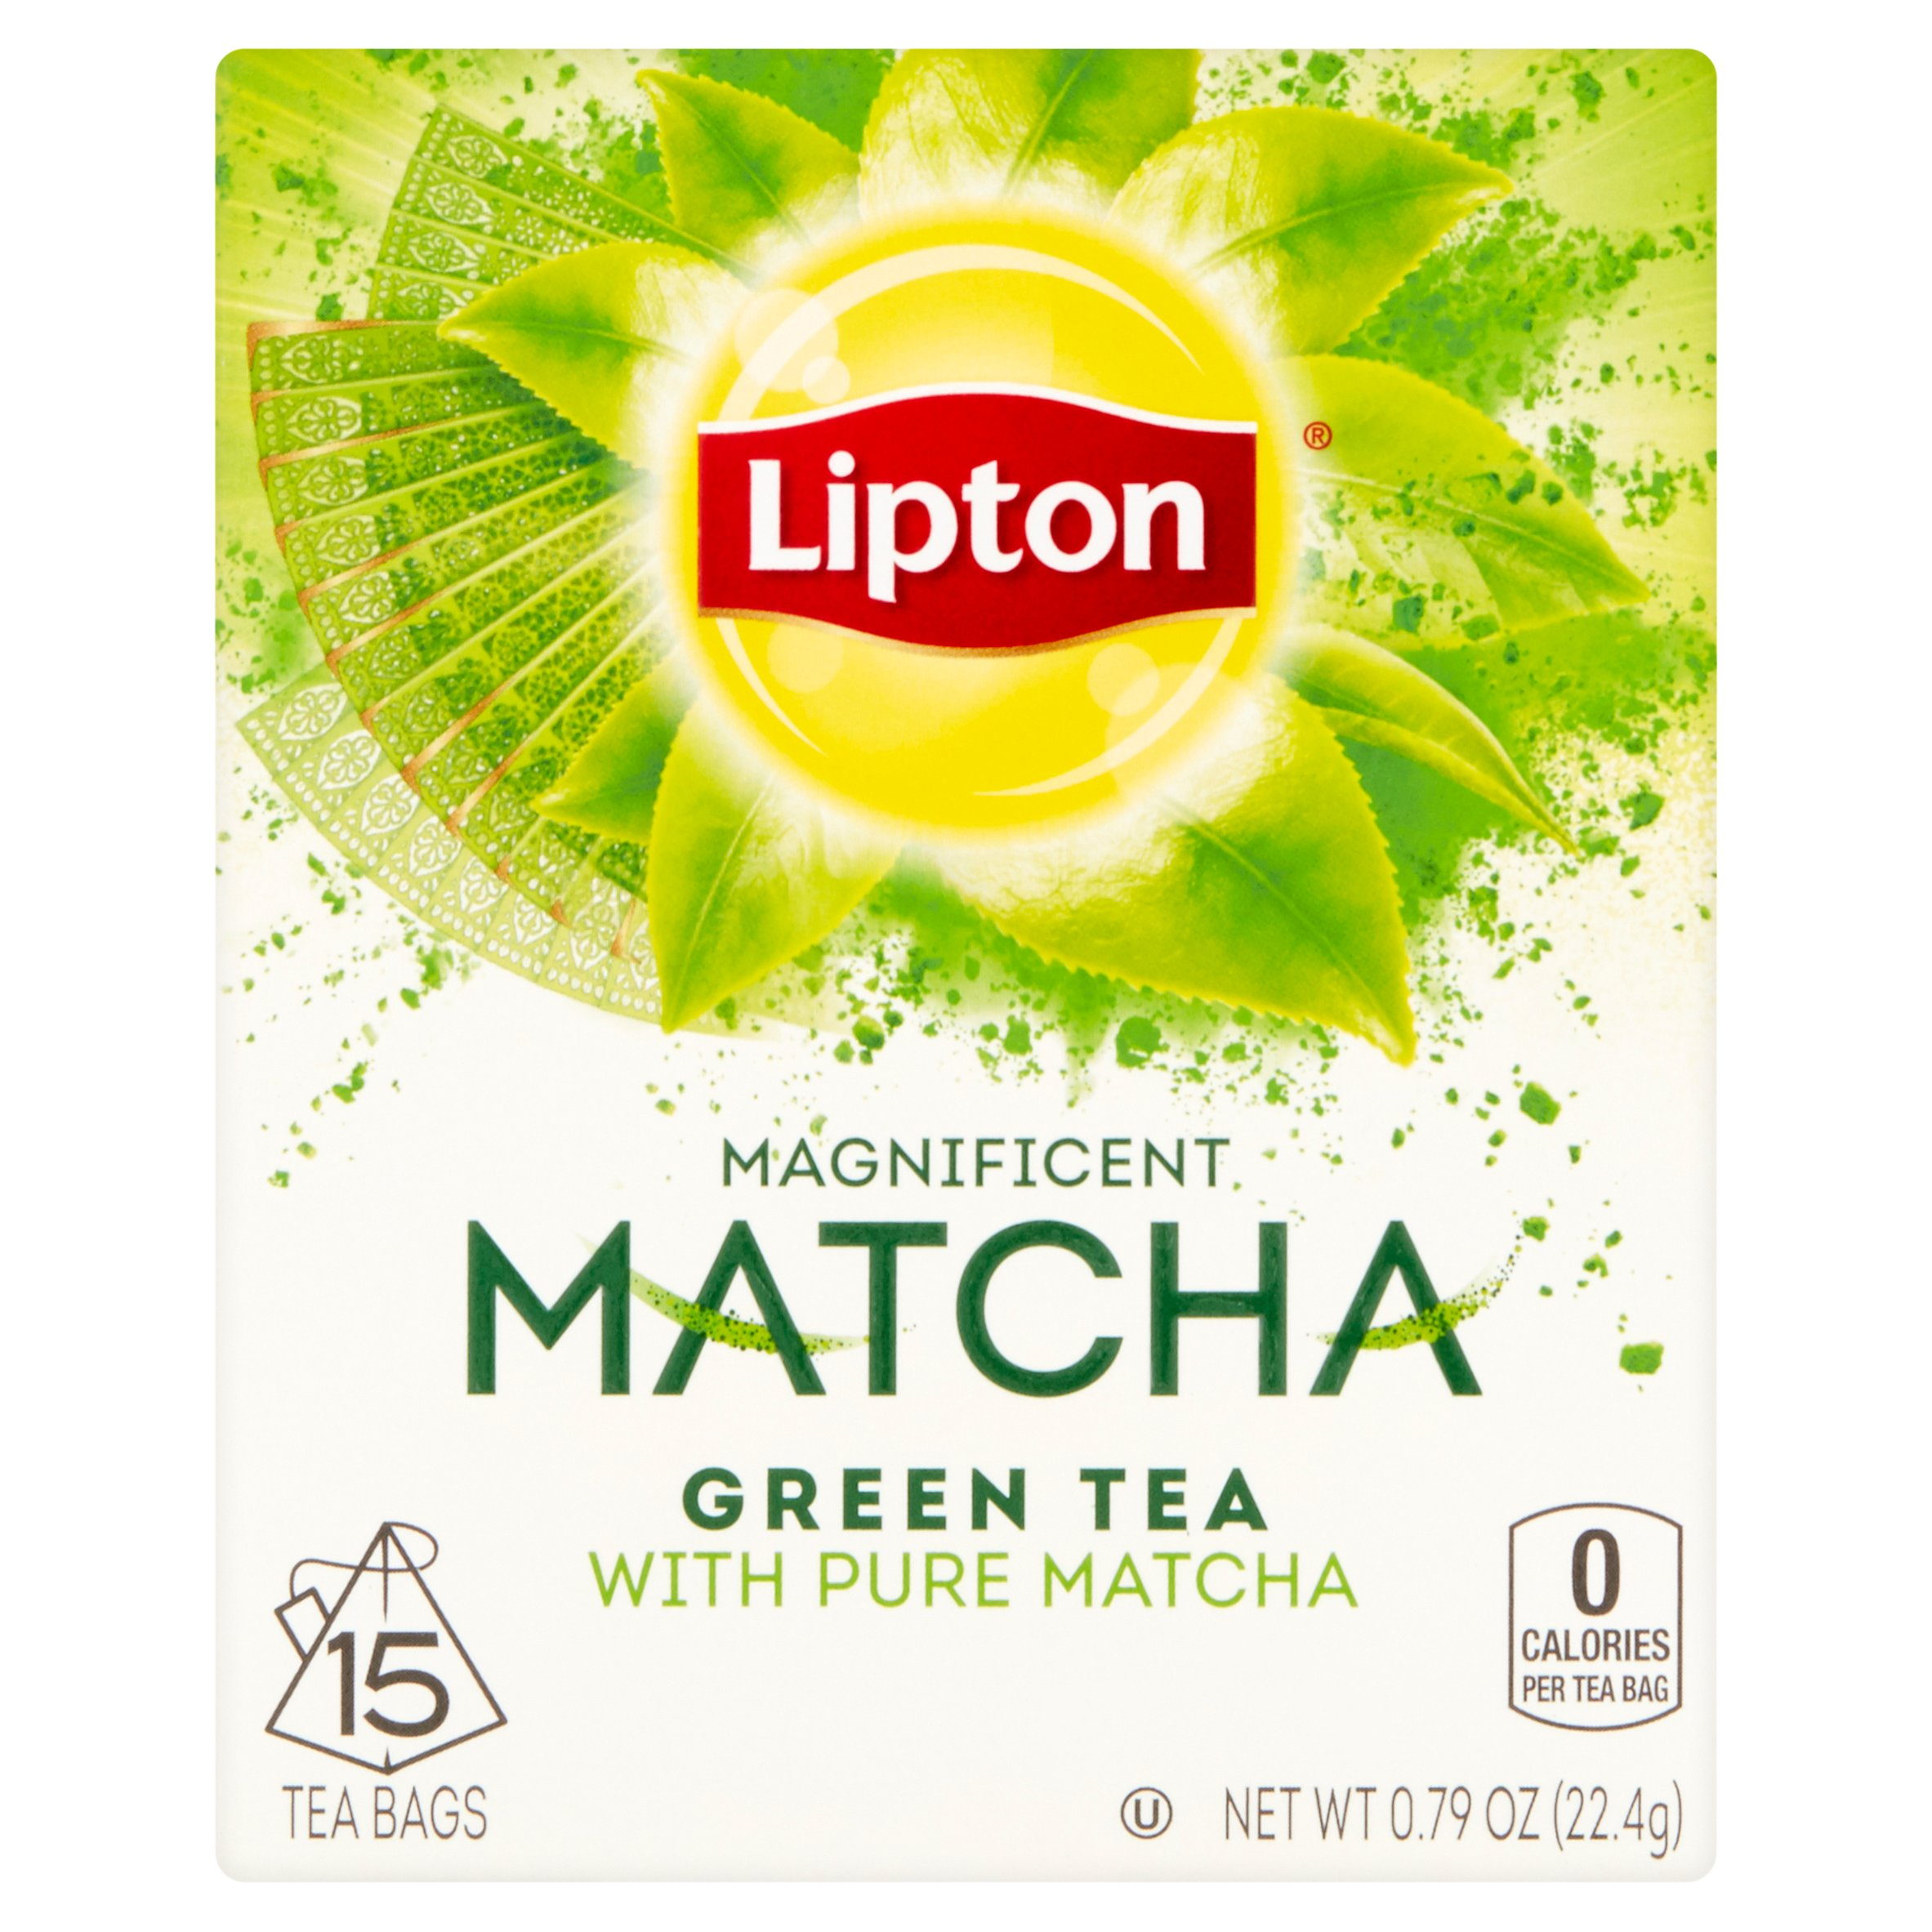 Lipton Magnificent Matcha Green Tea Bags Pure Matcha 15 ct